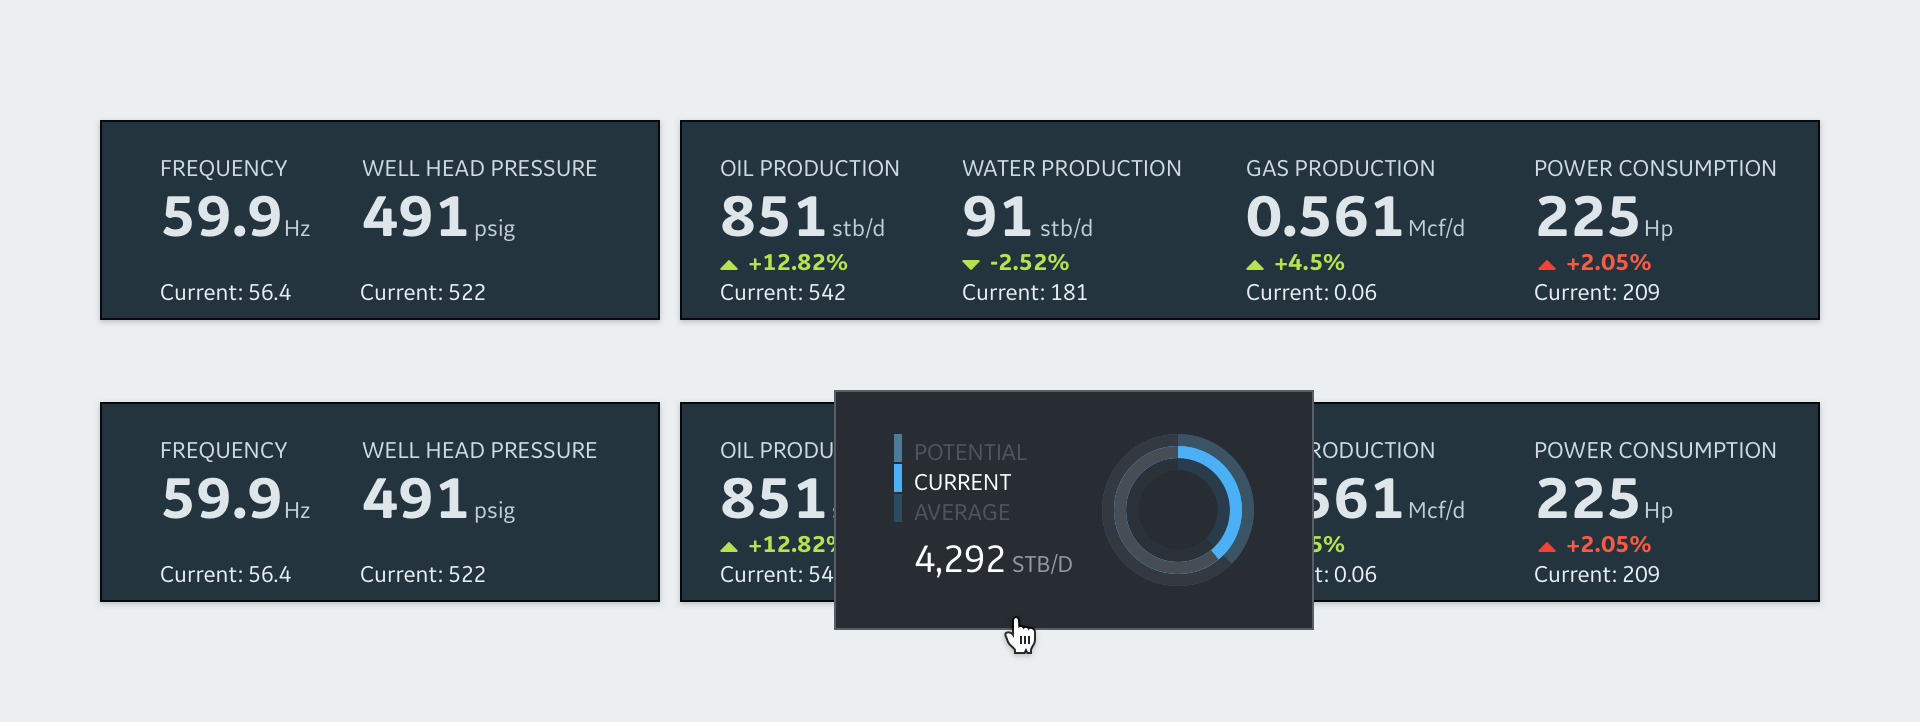 KPI summary clearly highlighting optimization results with a total contribution donut chart on hover.